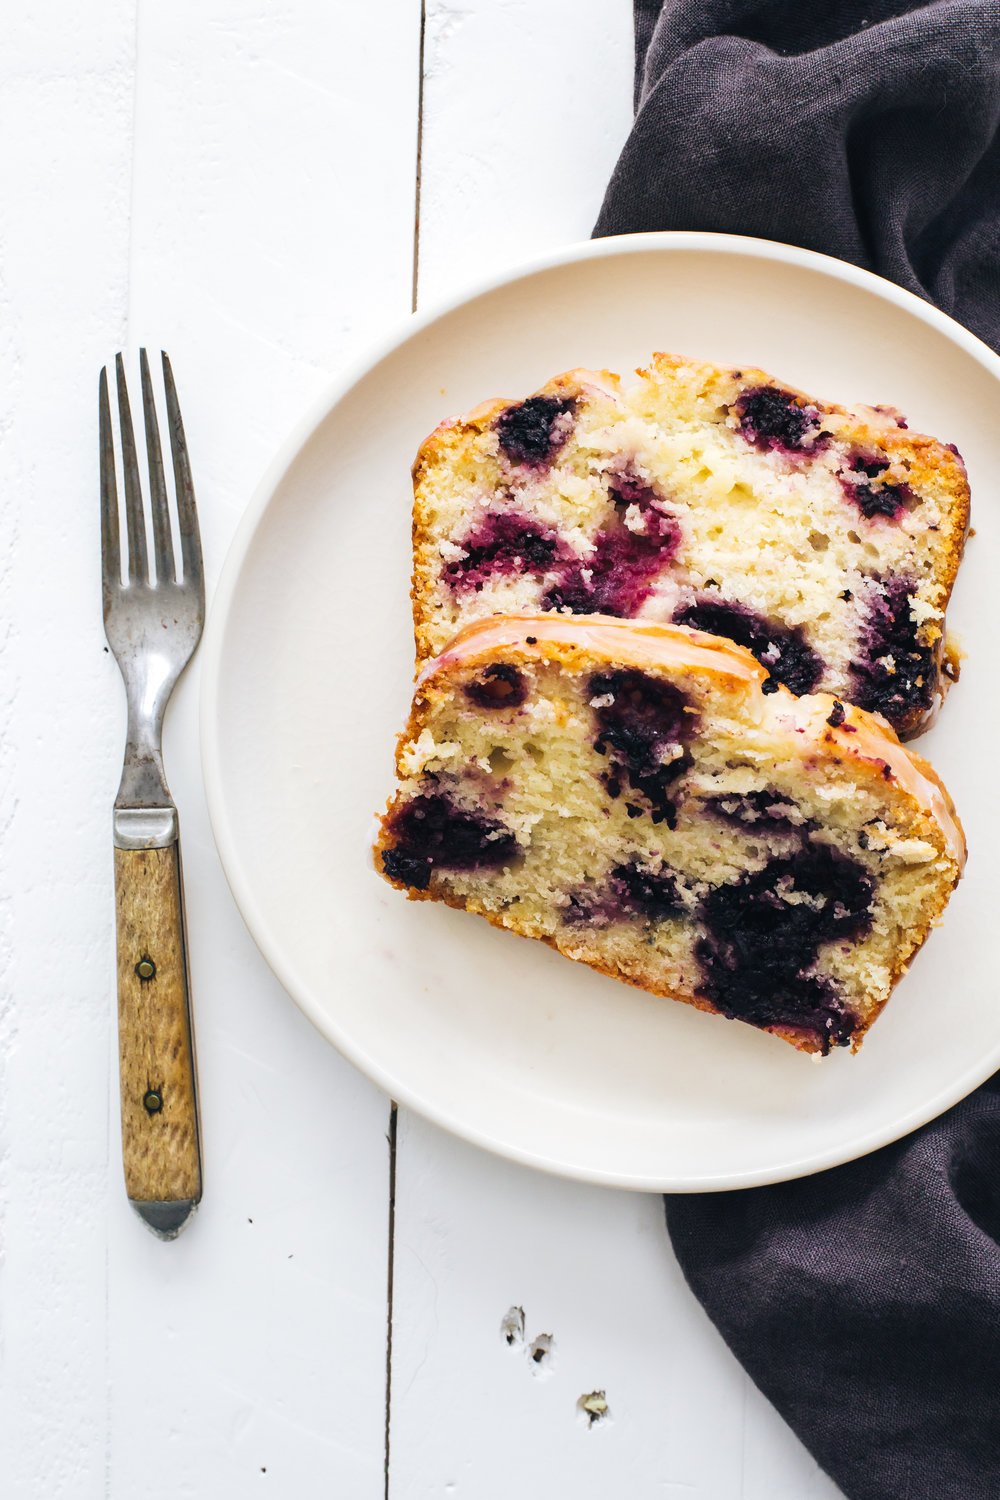 mulberry_yogurt_lemon_cake-38.jpg